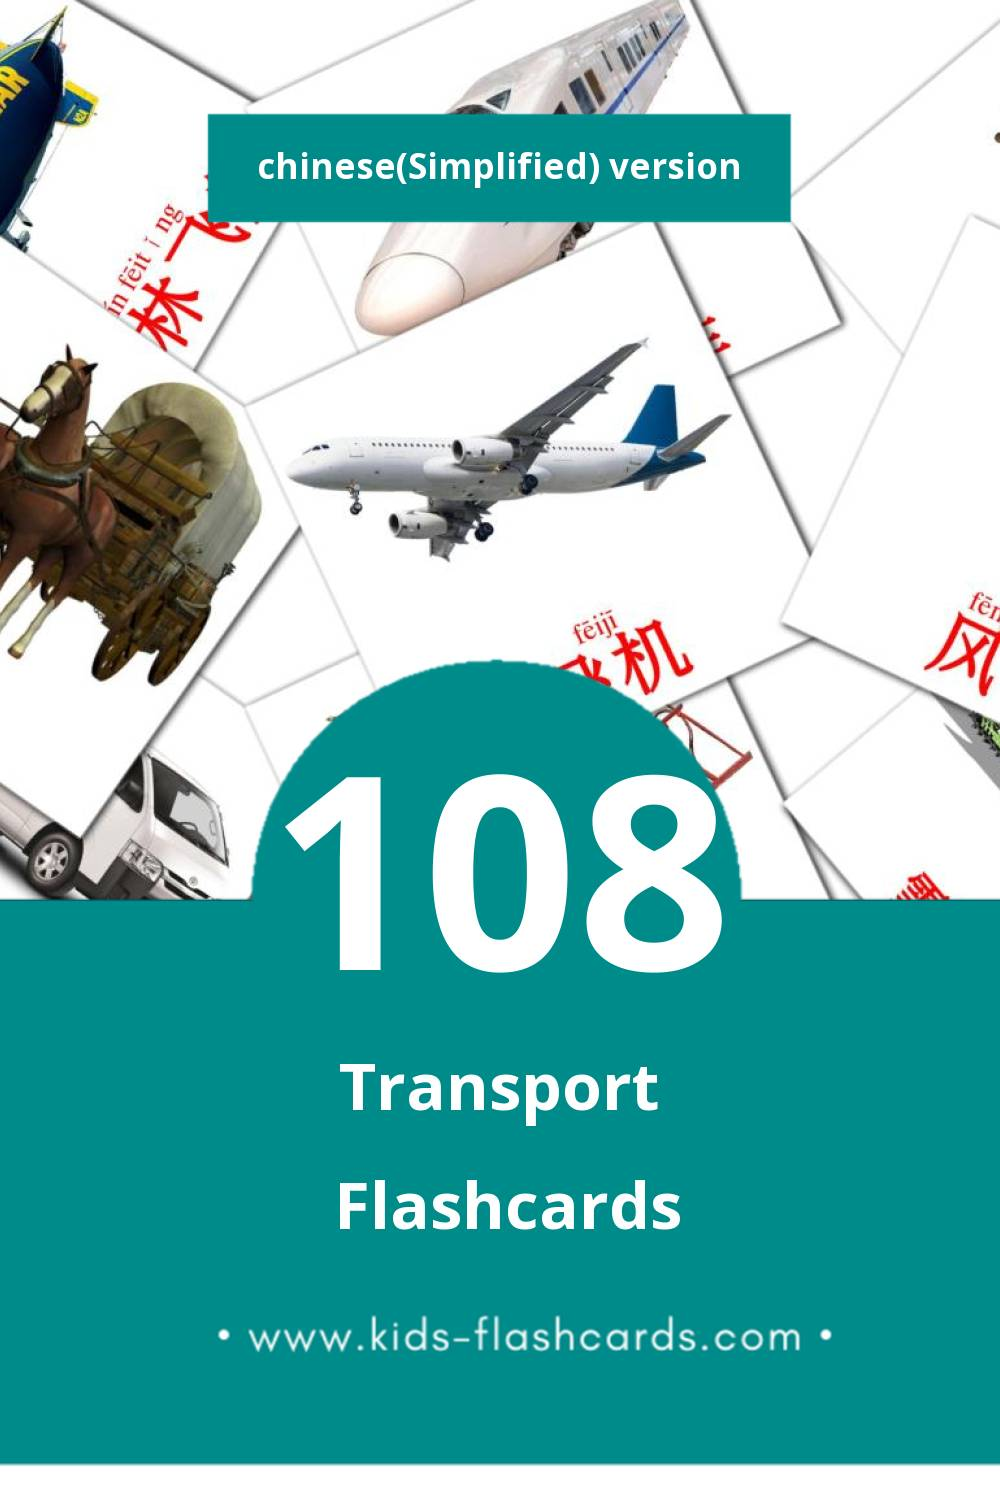 Visual 运输 Flashcards for Toddlers (28 cards in Chinese(Simplified))